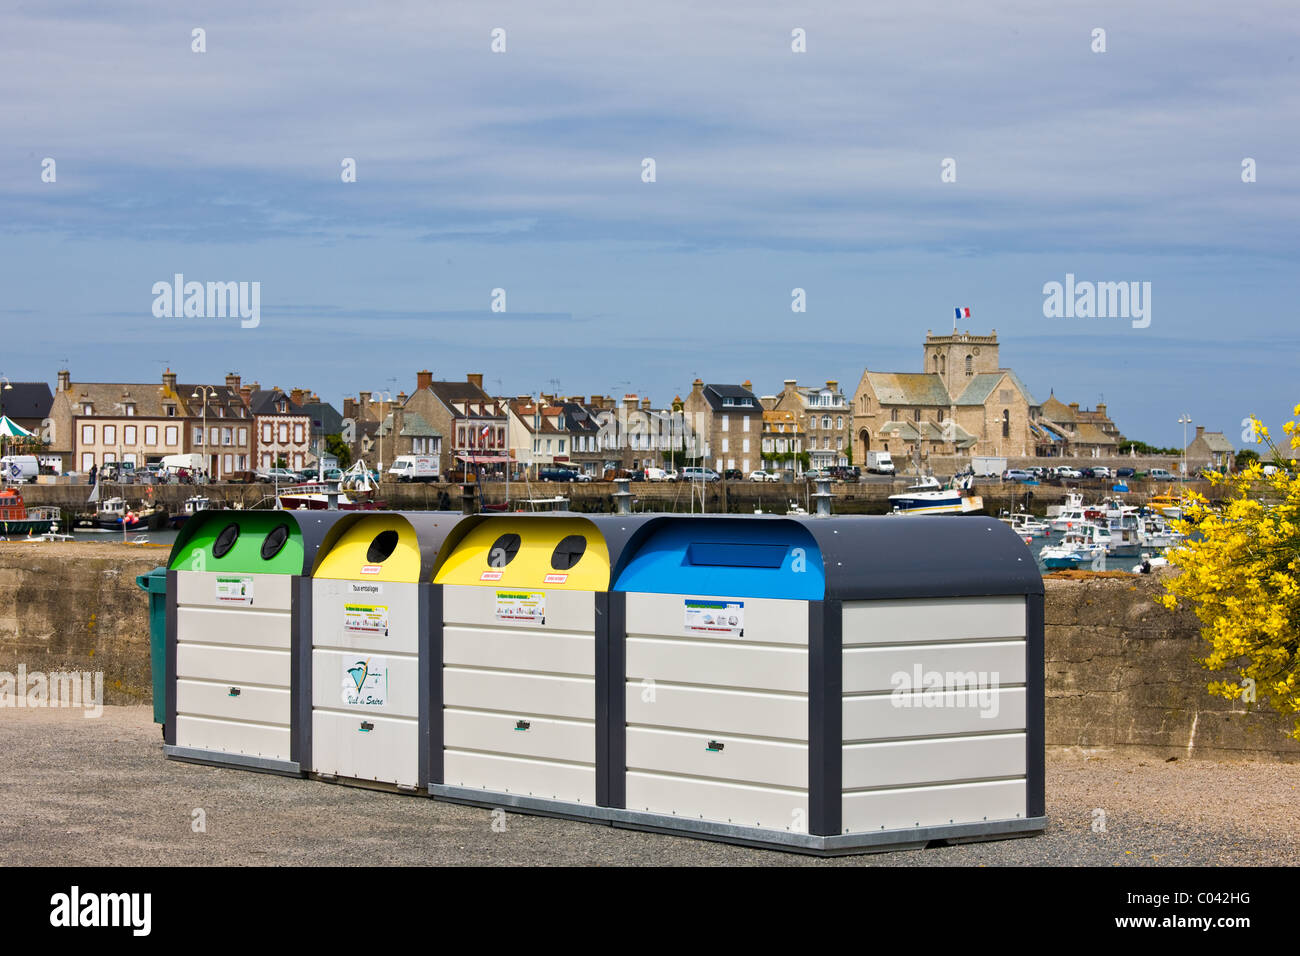 Large plastic recycling bins, dechetterie, for plastic, paper, glass spoil the view in Barfleur in Normandy, France Stock Photo